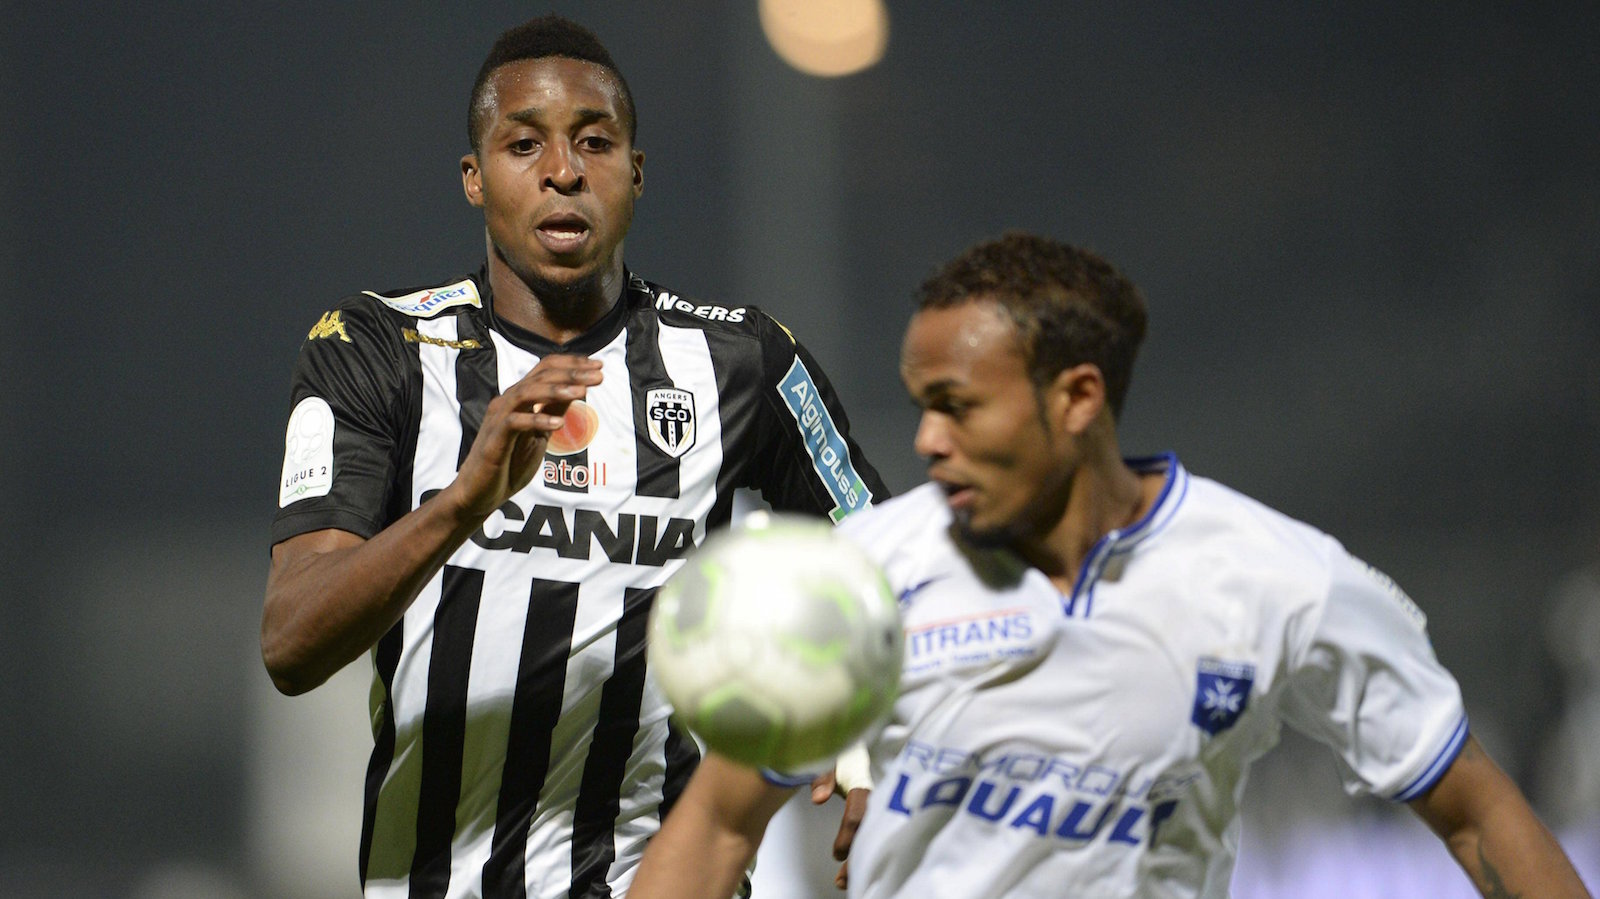 Match Auxerre vs Angers en direct streaming live